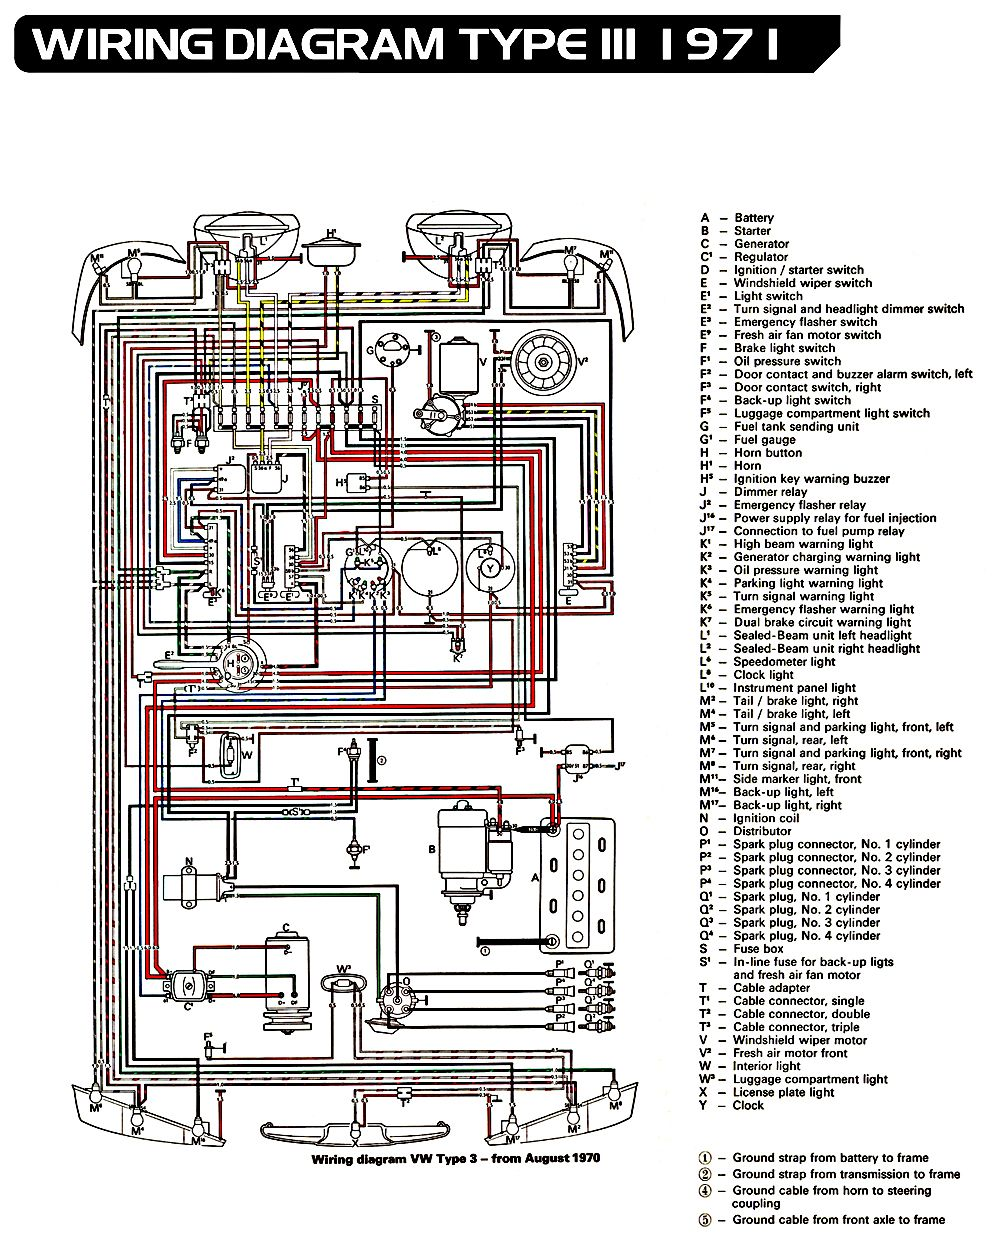 e19fd202920e69647b5c593f54755423 1971 type 3 vw wiring diagram so simple compared to a modern ecu vw mk1 wiring diagram at n-0.co